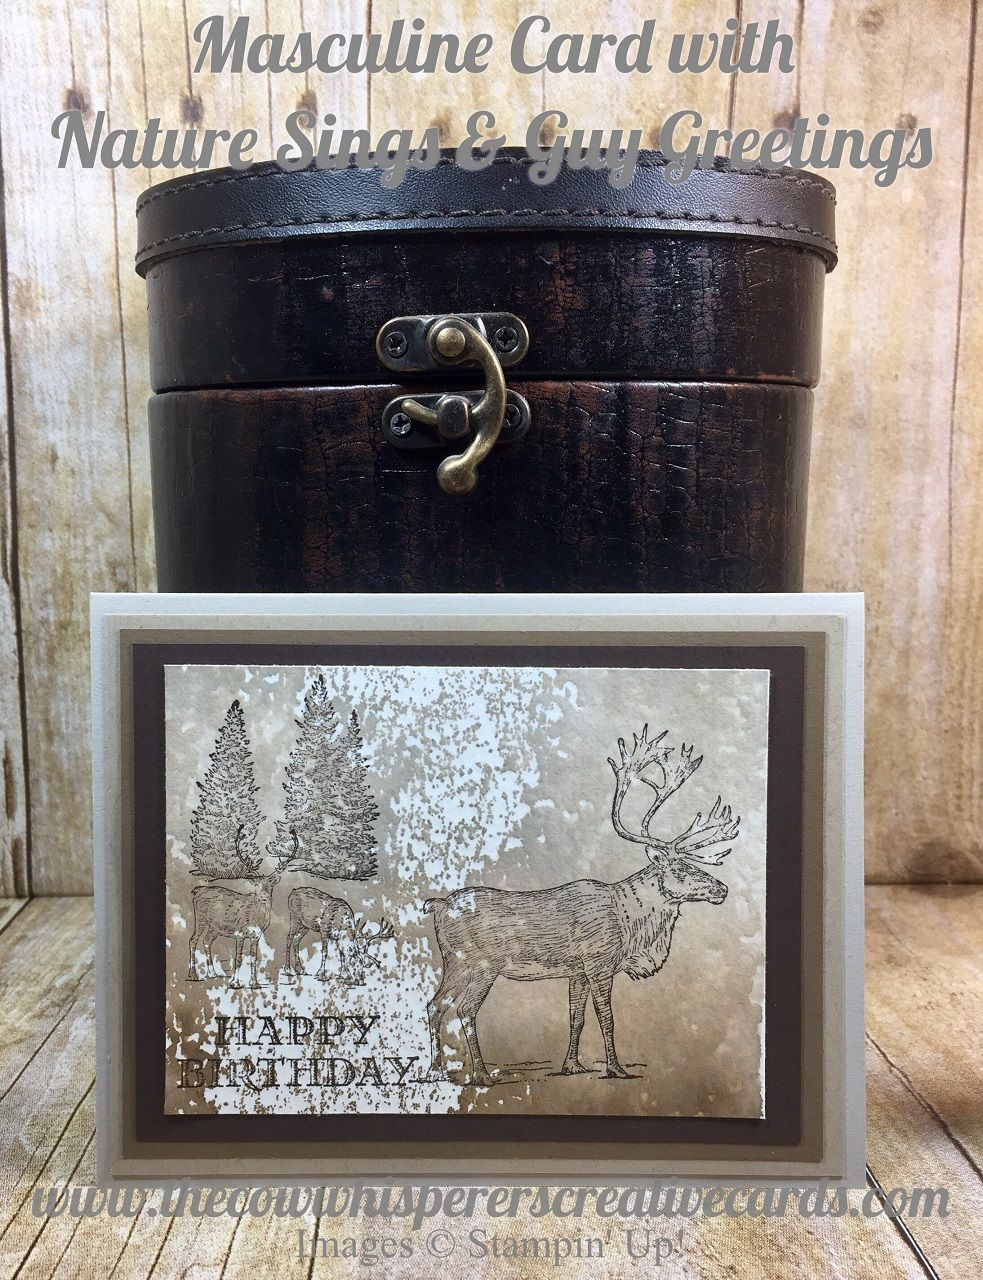 Card Making Ideas For Men Part - 45: Masculine Card With Nature Sings U0026 Guy Greetings